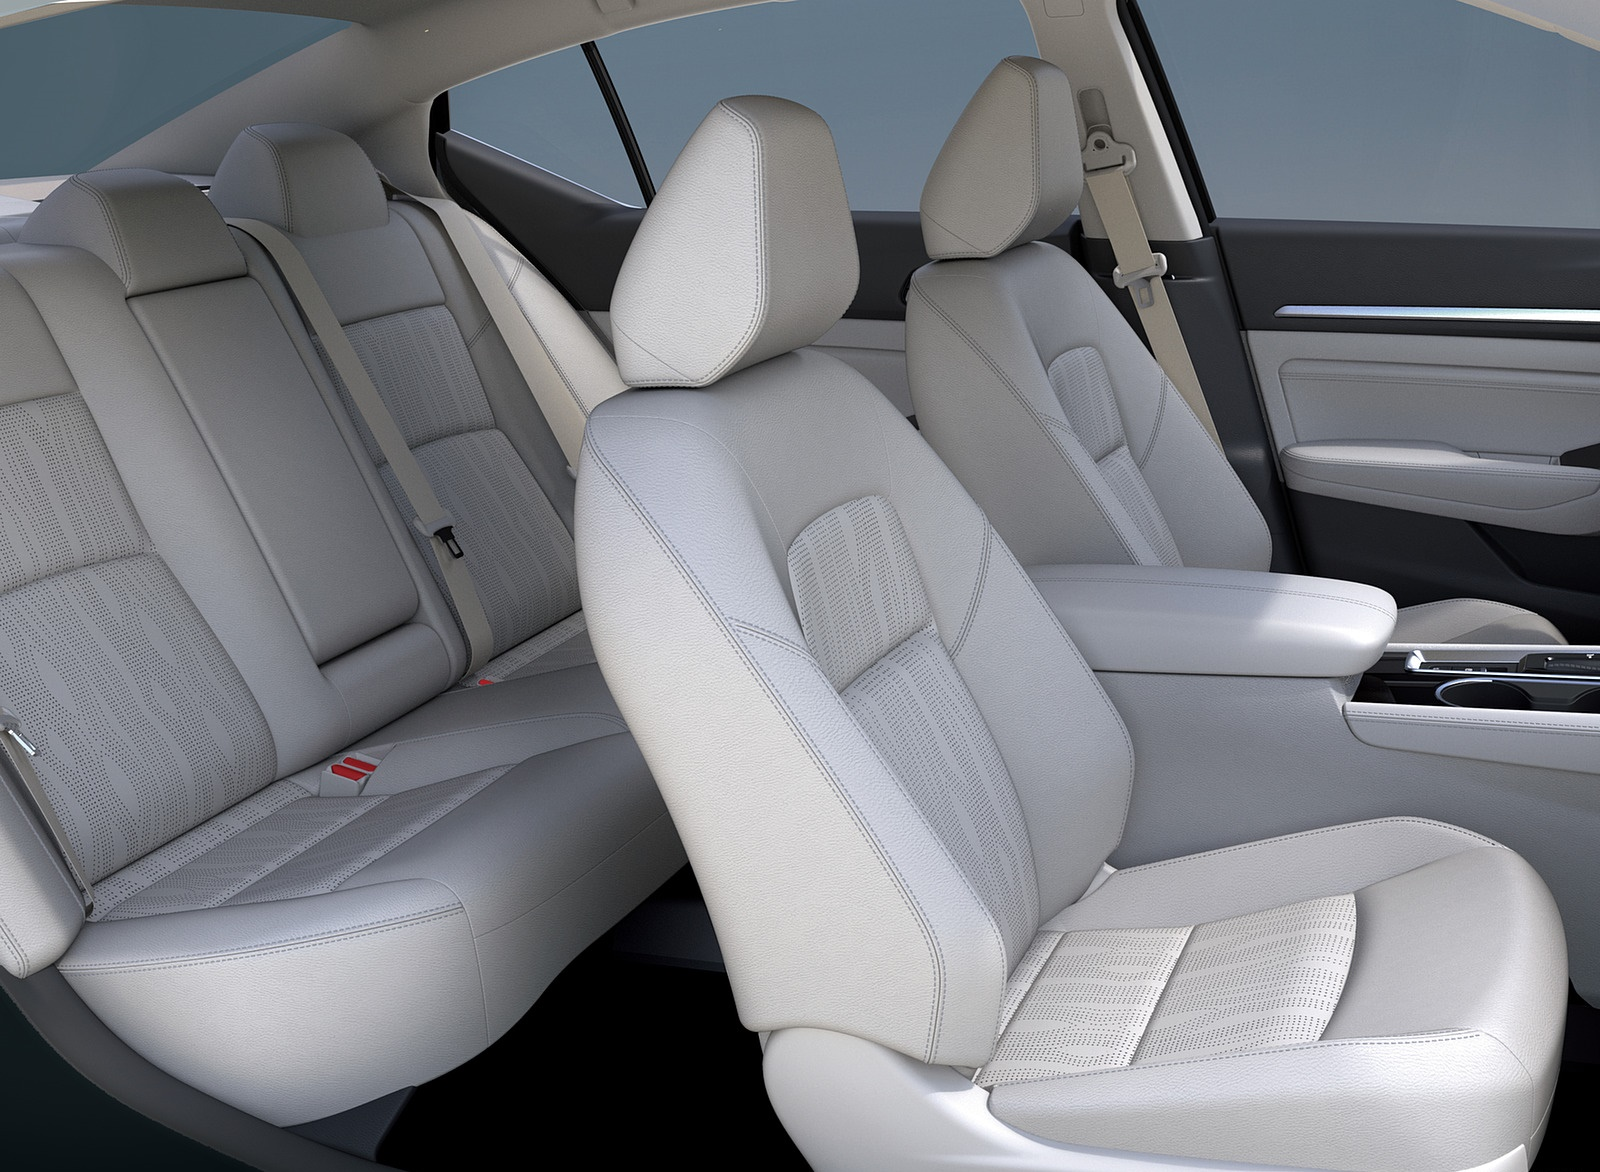 2019 Nissan Altima Interior Front Seats Wallpapers (14)